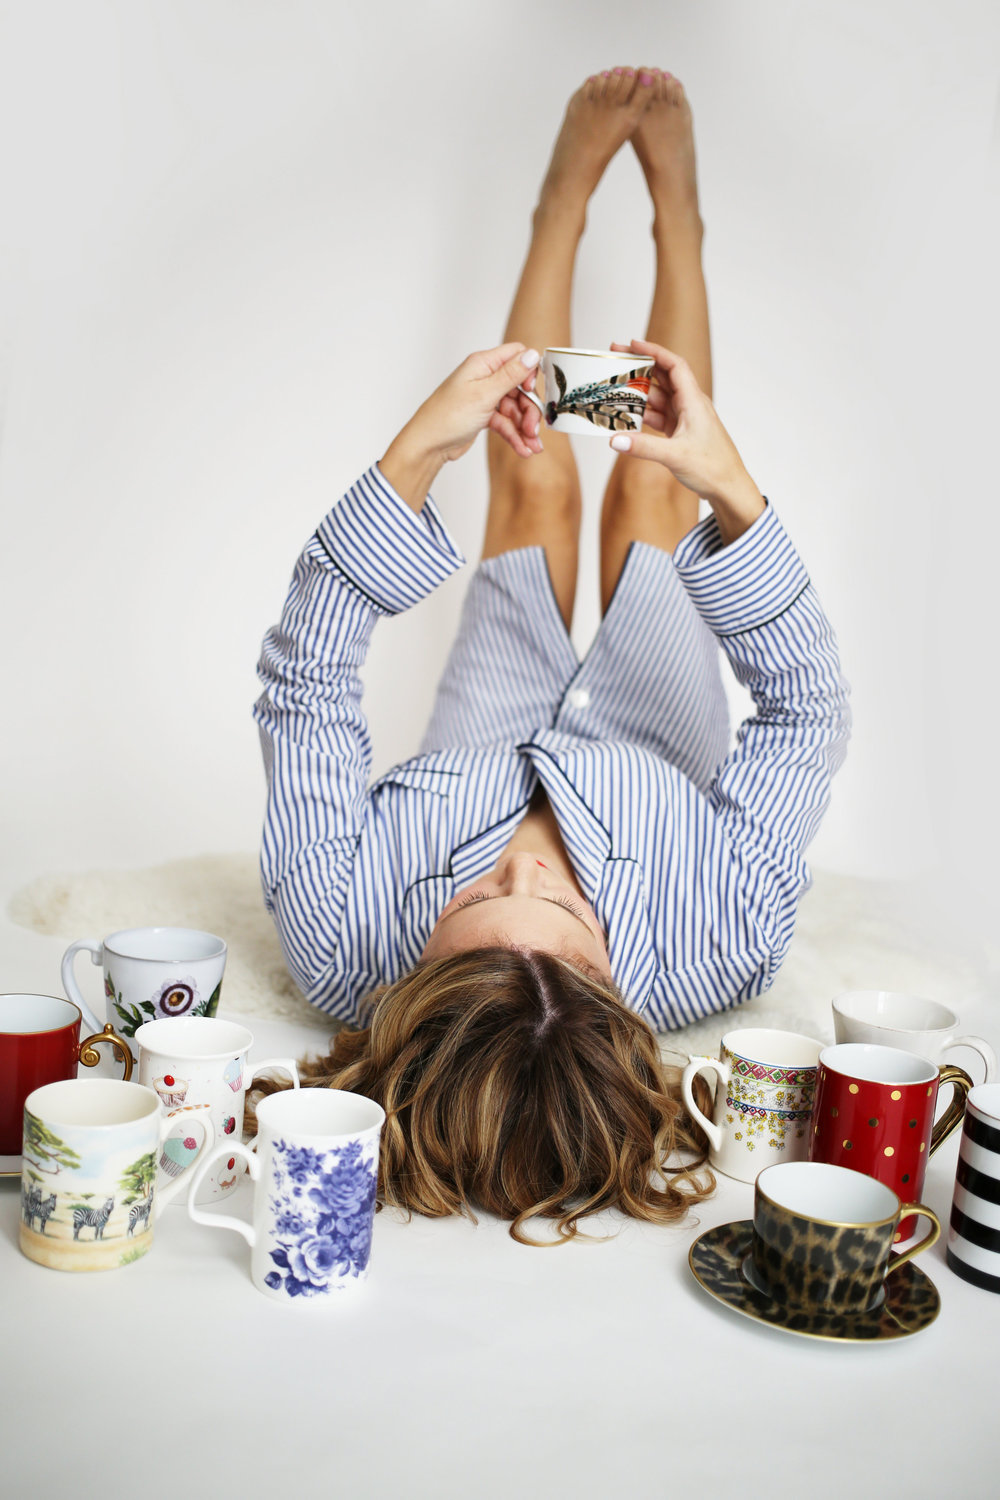 J.Crew striped pajamas and Lerant coffee cups 3.jpg